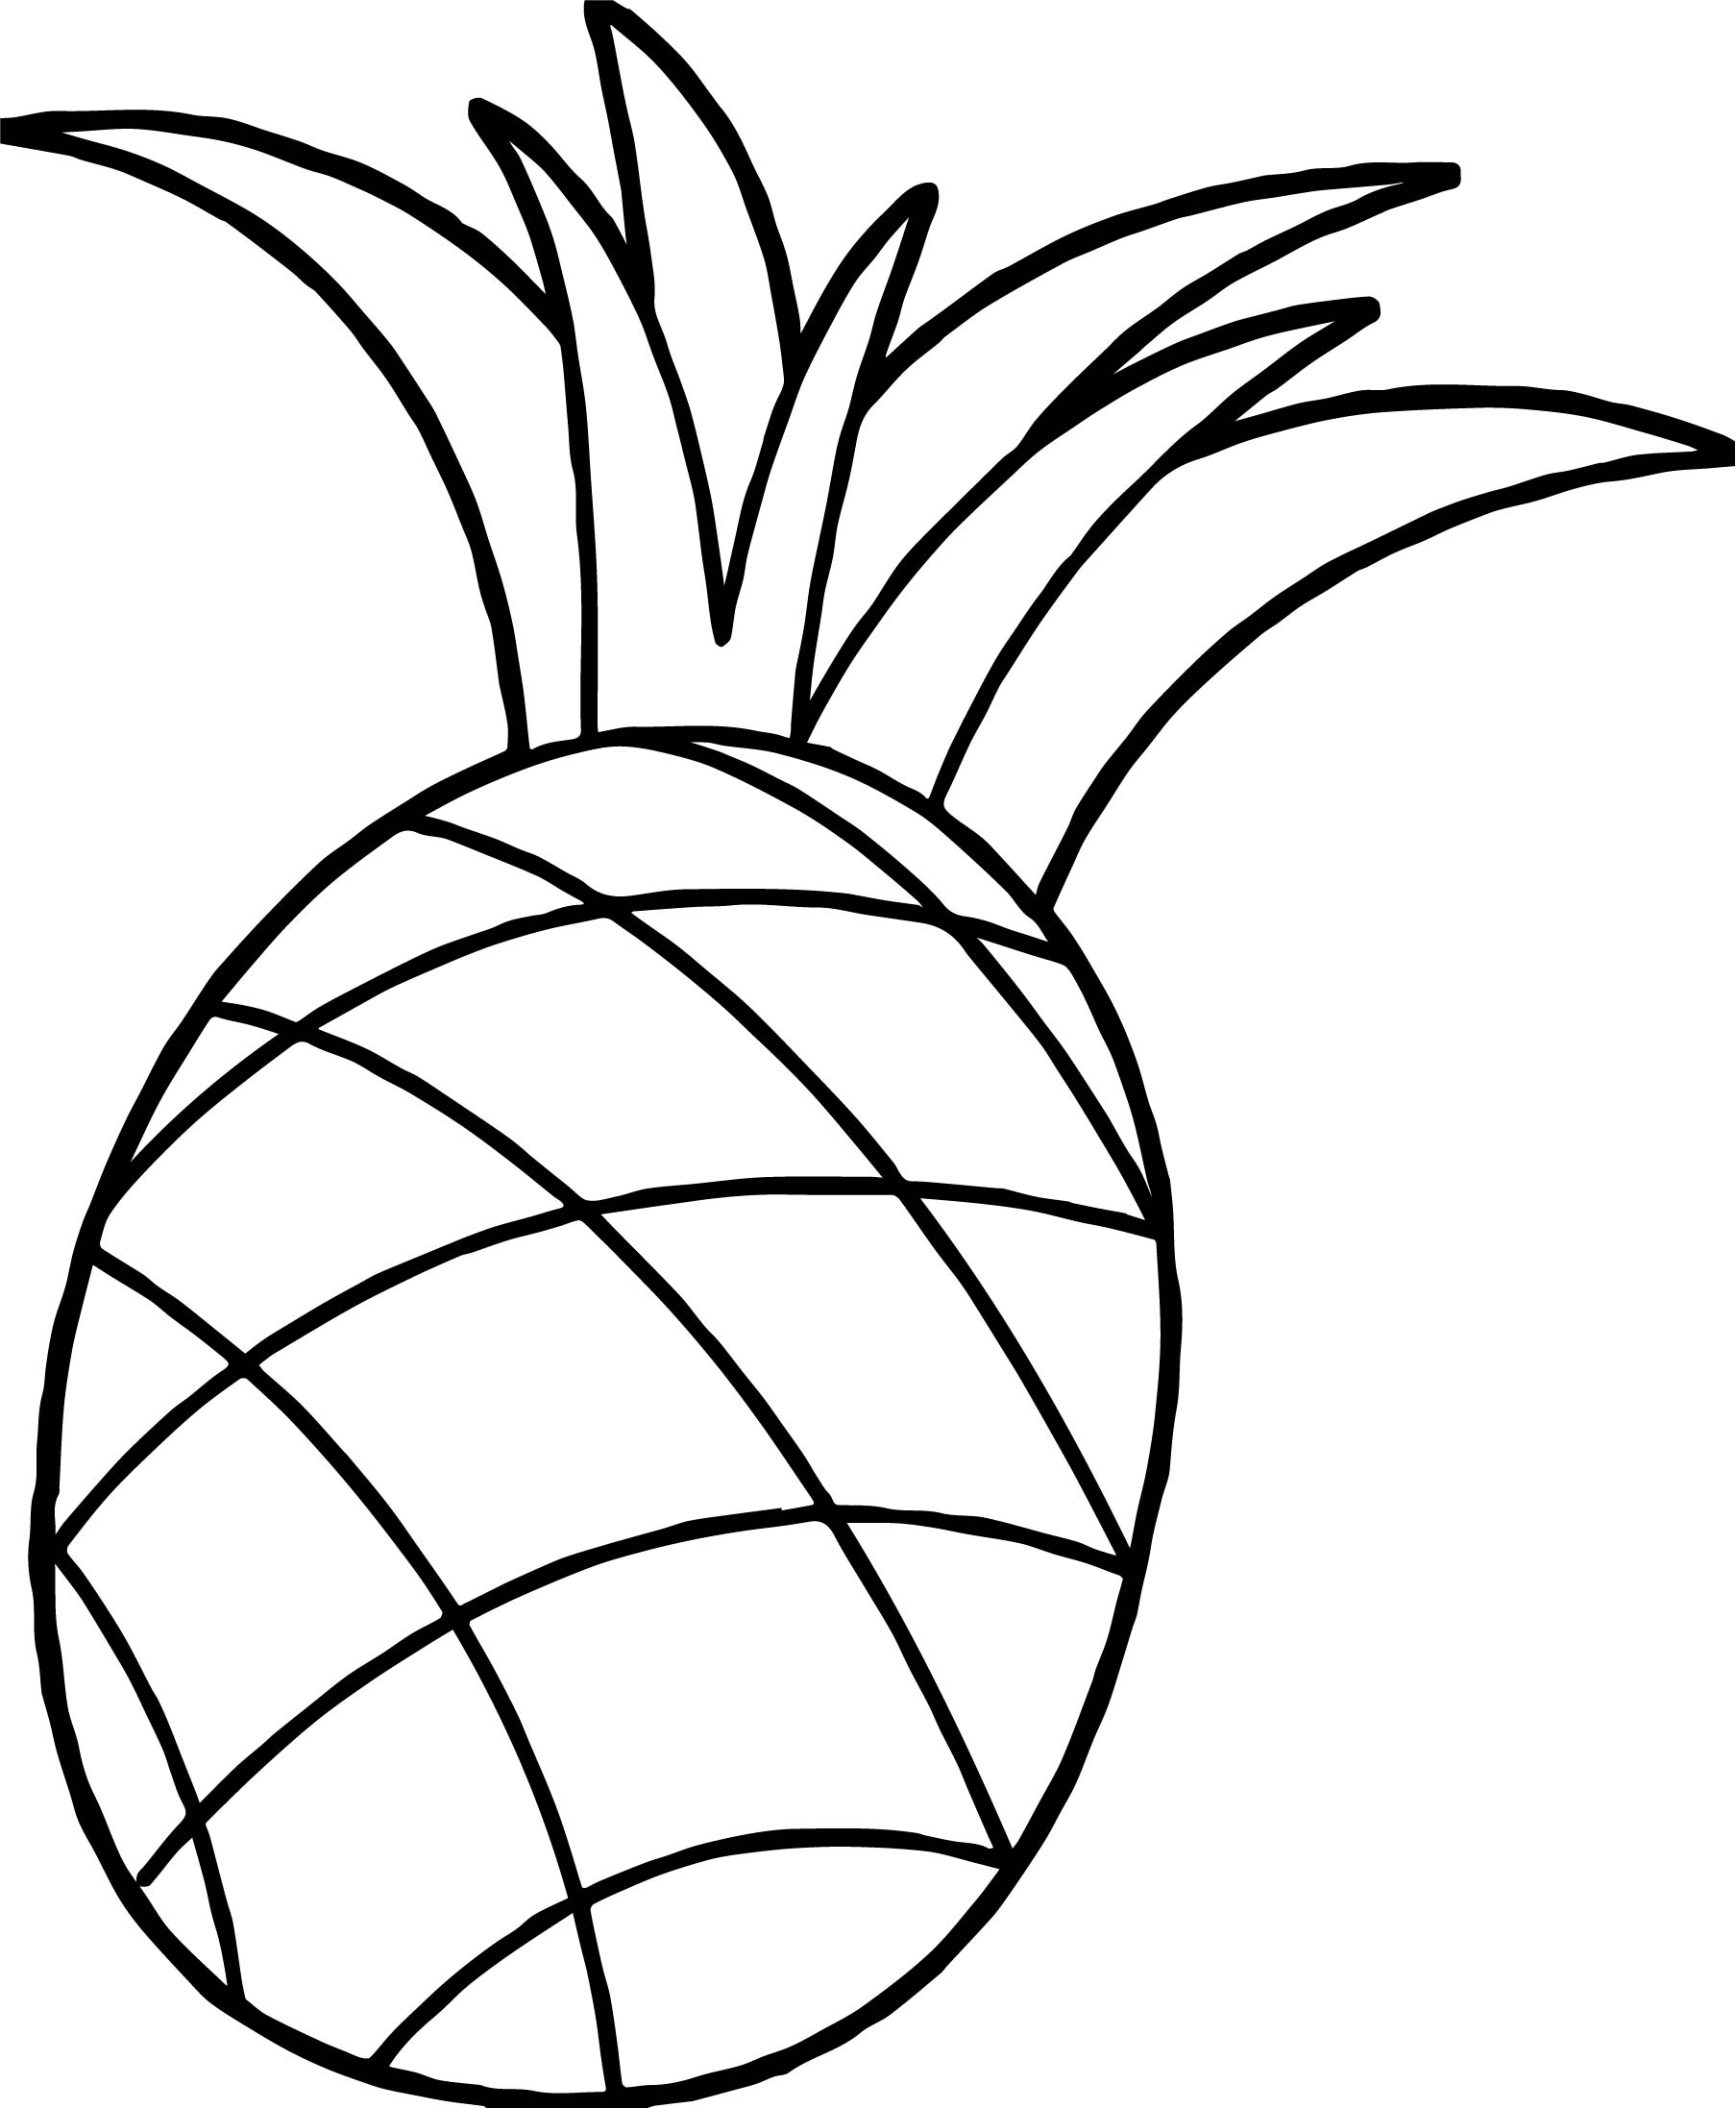 pineapple colouring picture pineapple printable coloring drawing pages for kids colouring pineapple picture